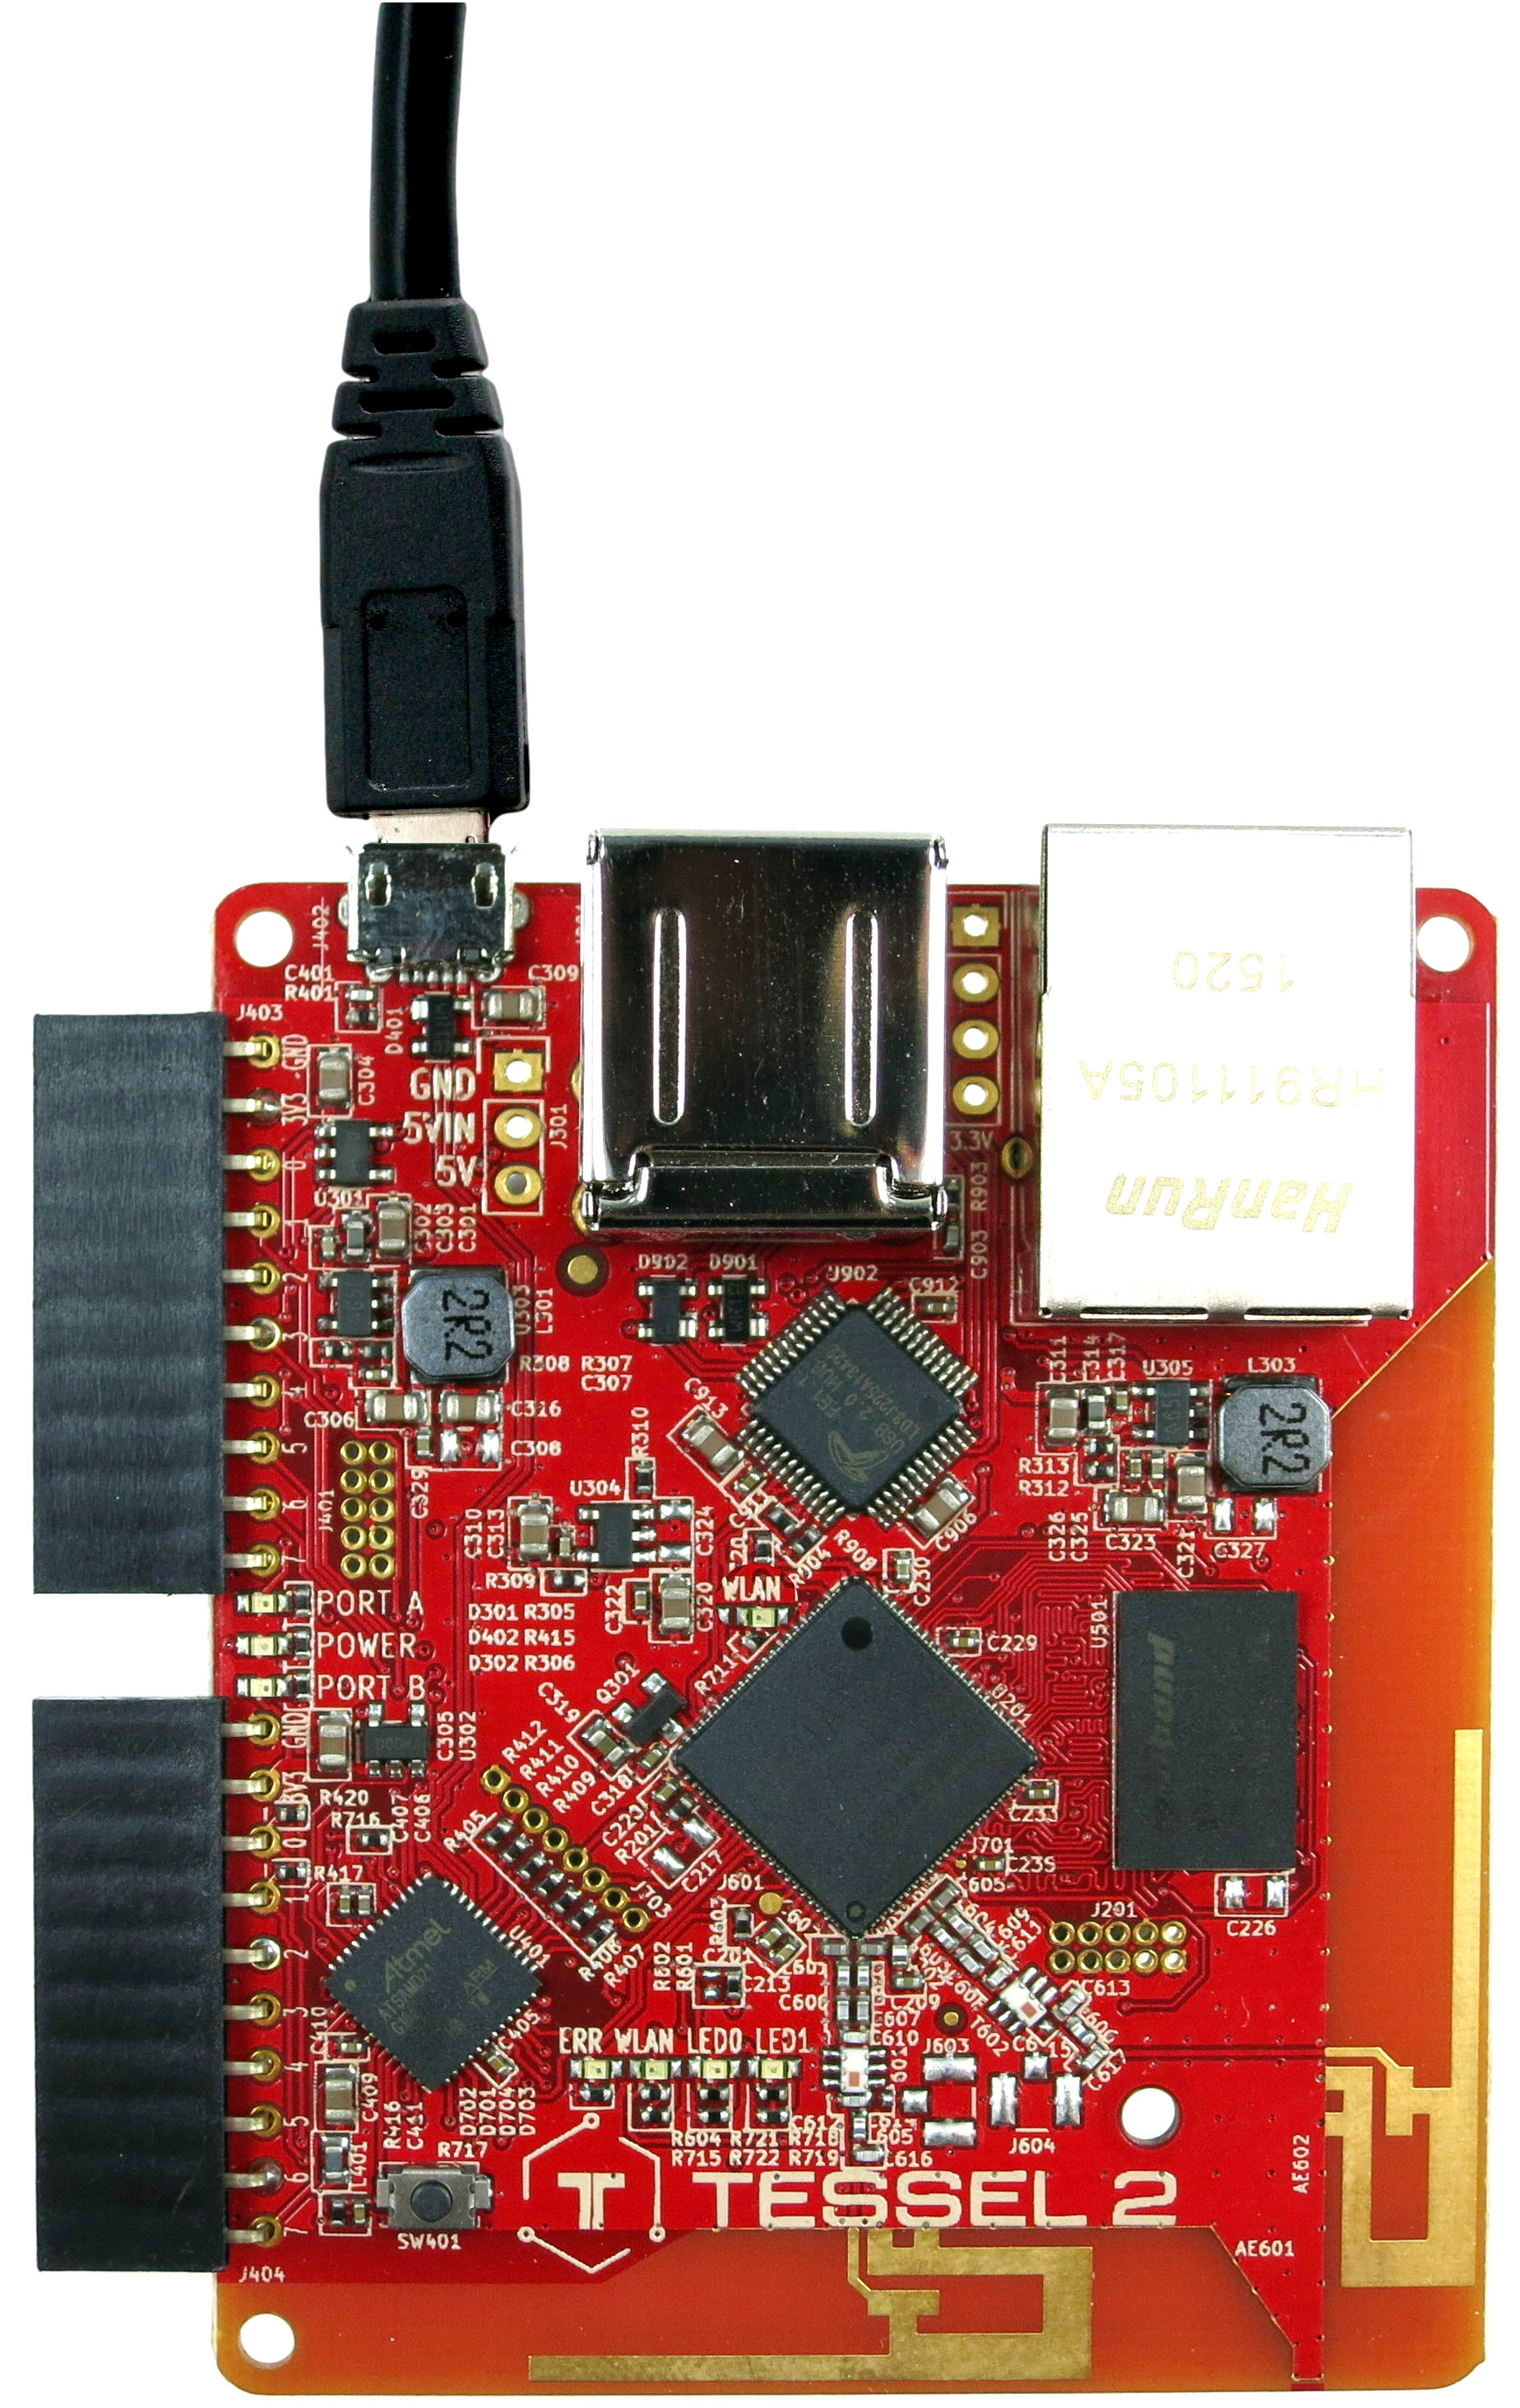 Photo of a Tessel 2 board